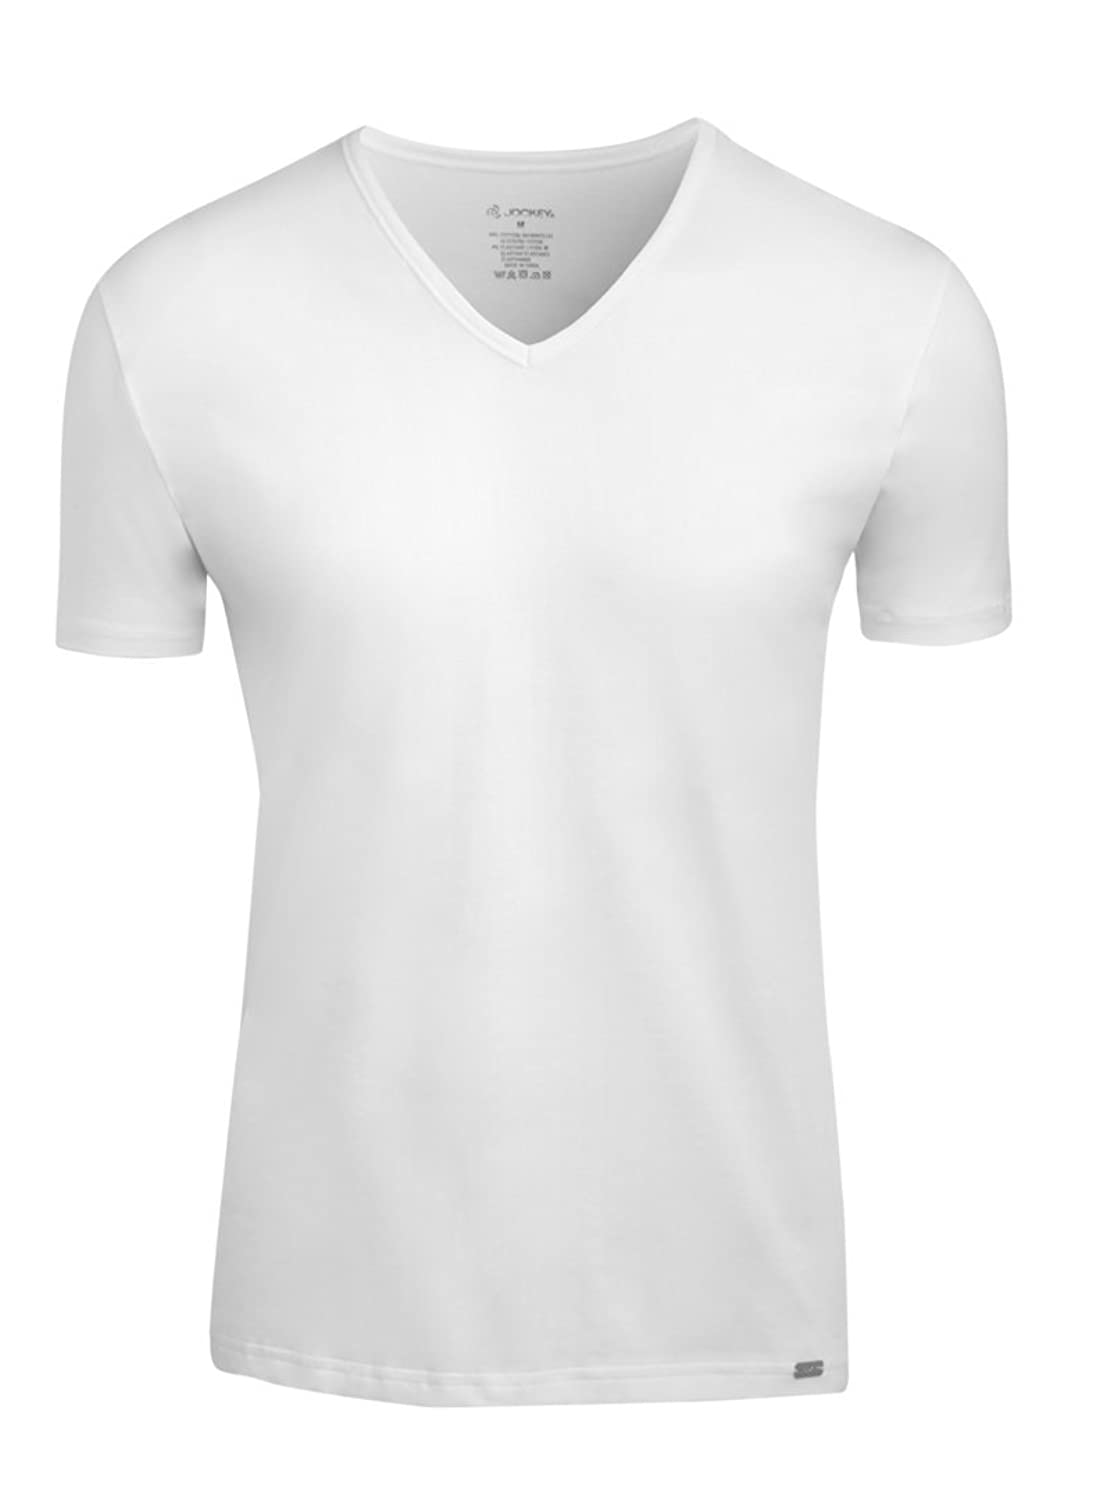 Jockey Premium Cotton V-Neck Shirt 4er Pack black - white